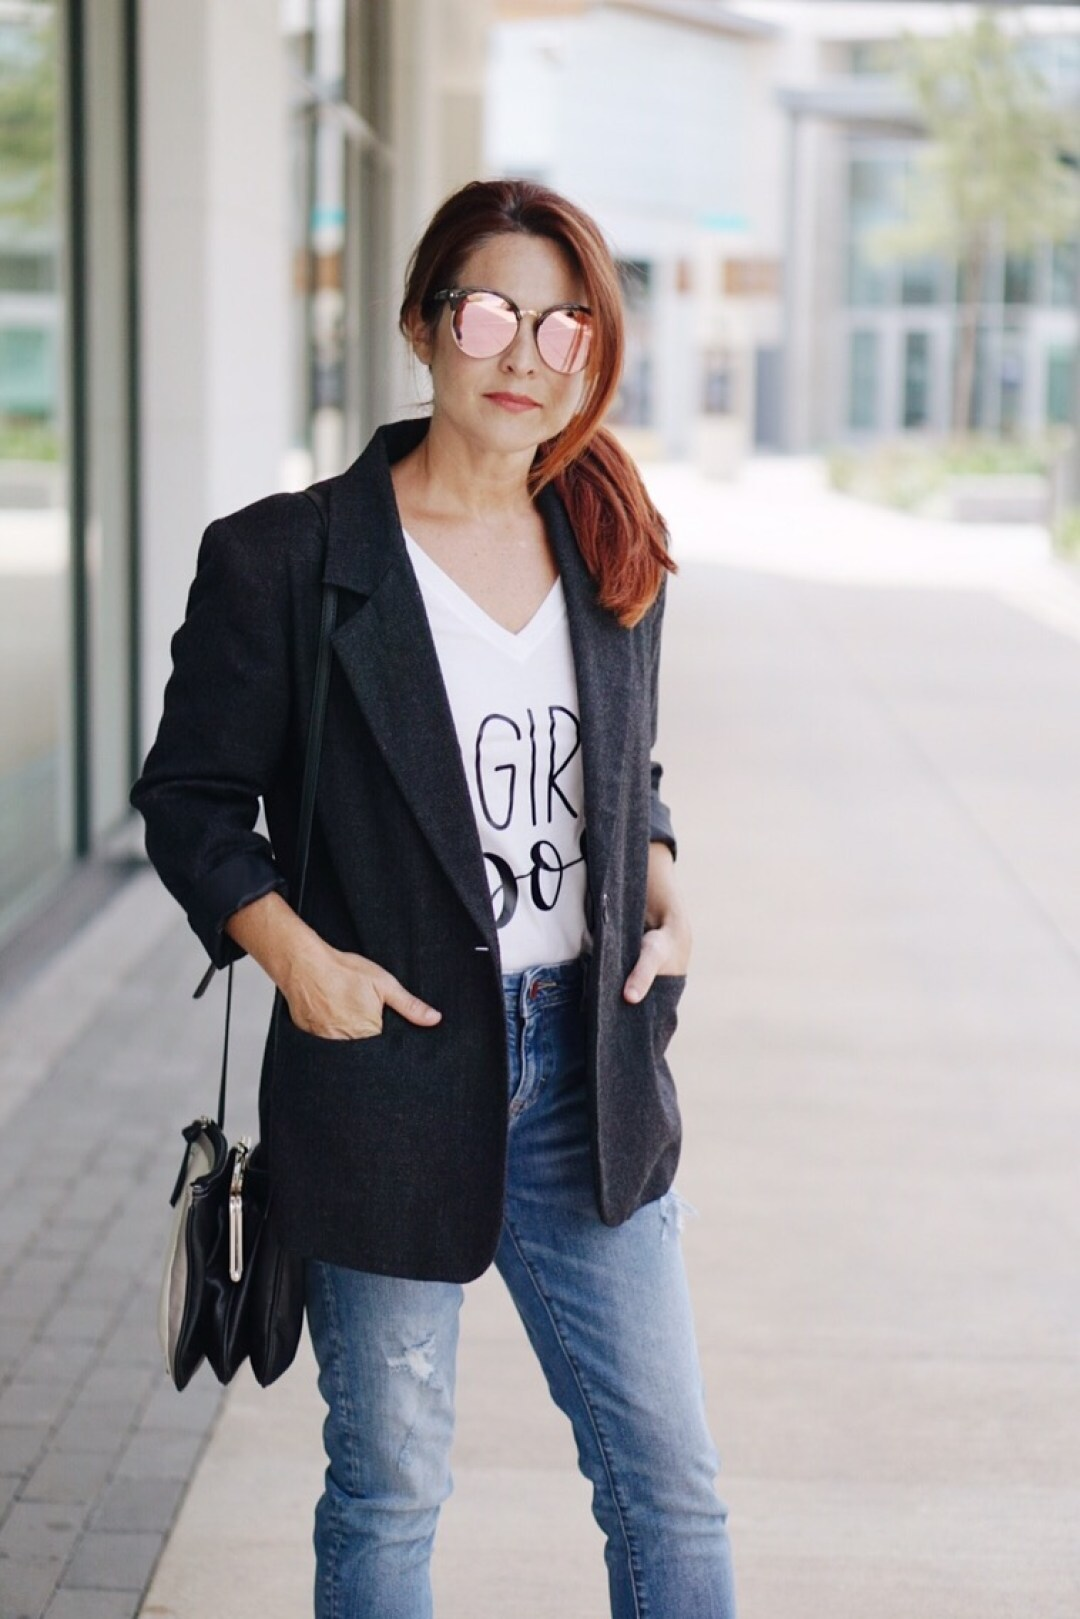 girl boss tshirt, blazer and tshirt outfit, menswear inspired outfit, blazer, denim and tee inspo